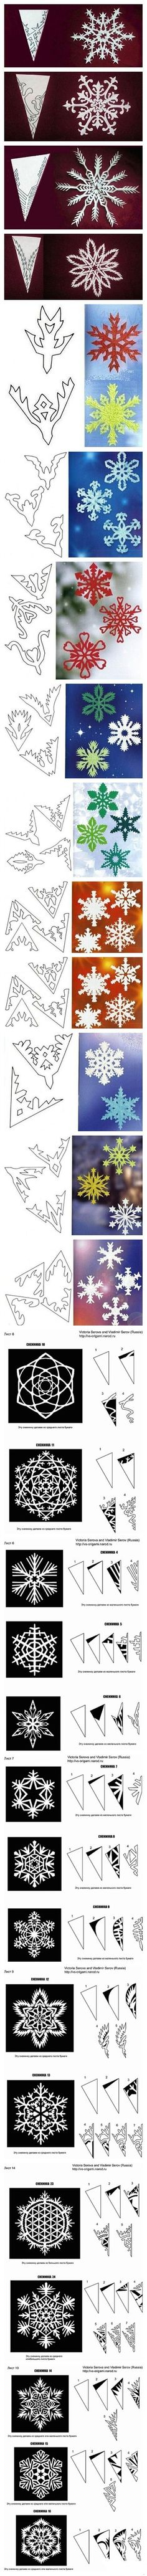 Cool! Patterns for paper snowflakes